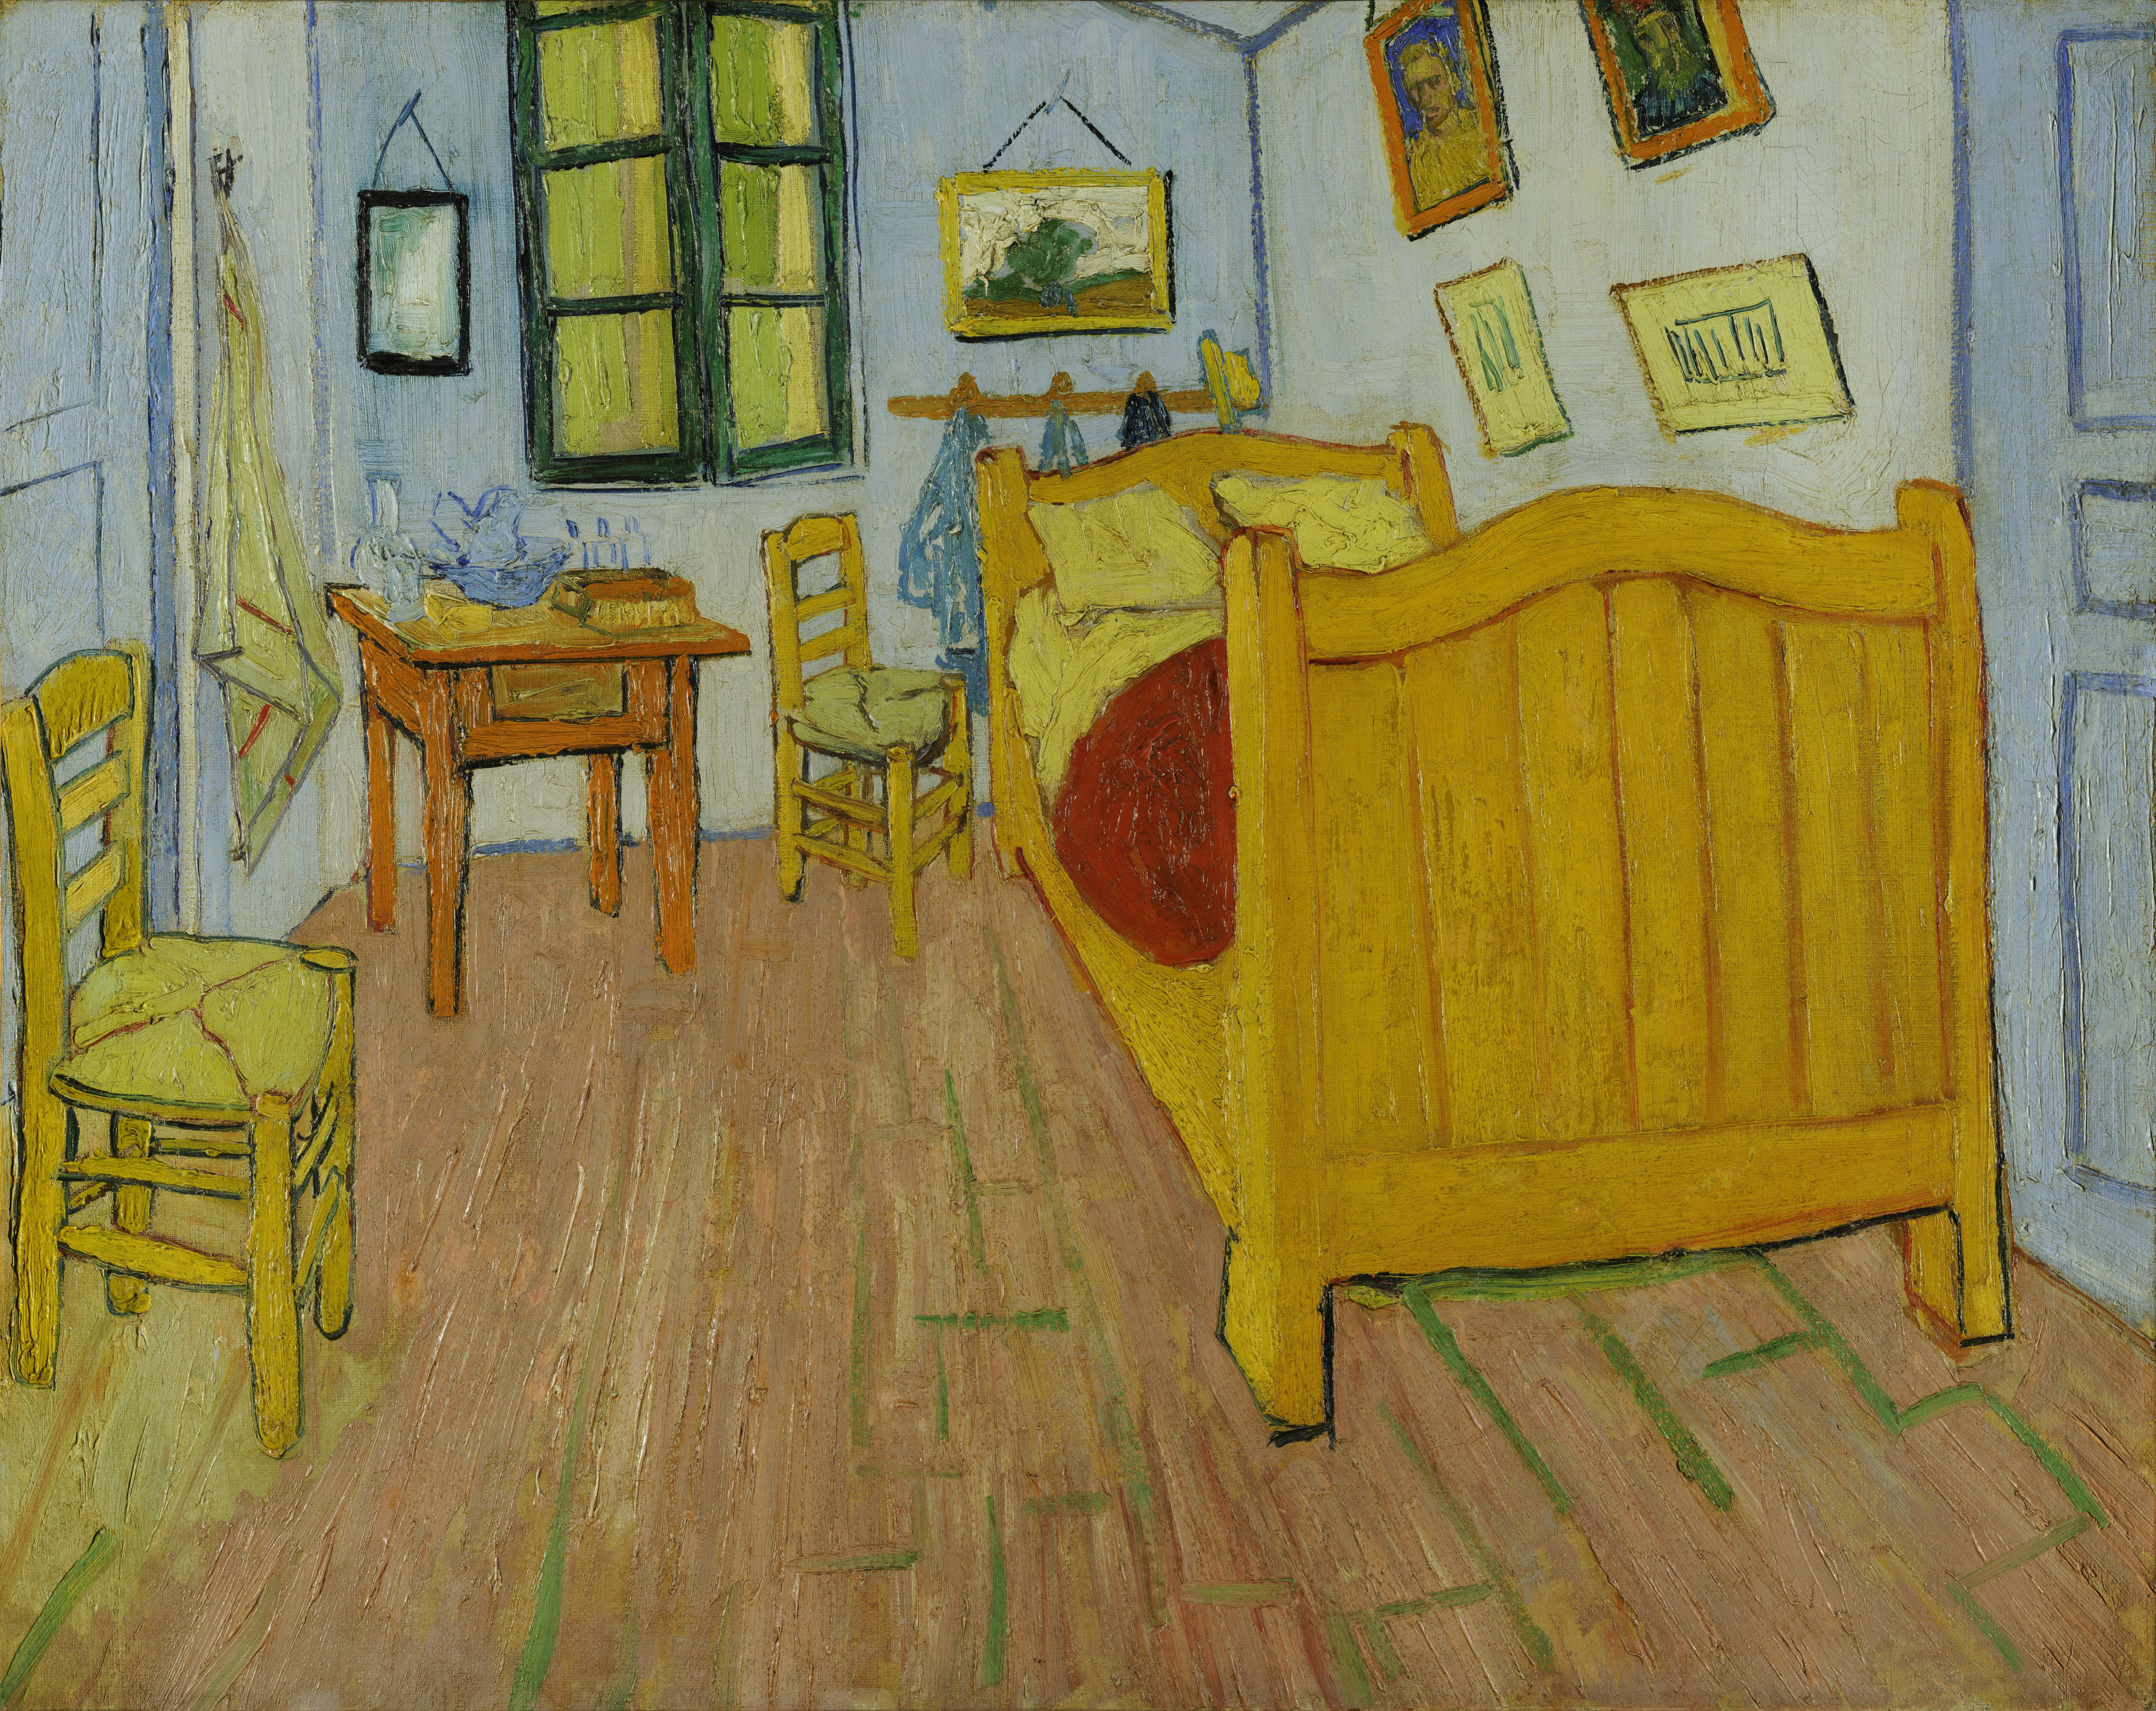 Small bedroom with blue walls, yellow bed, two wicker chairs and a small table.